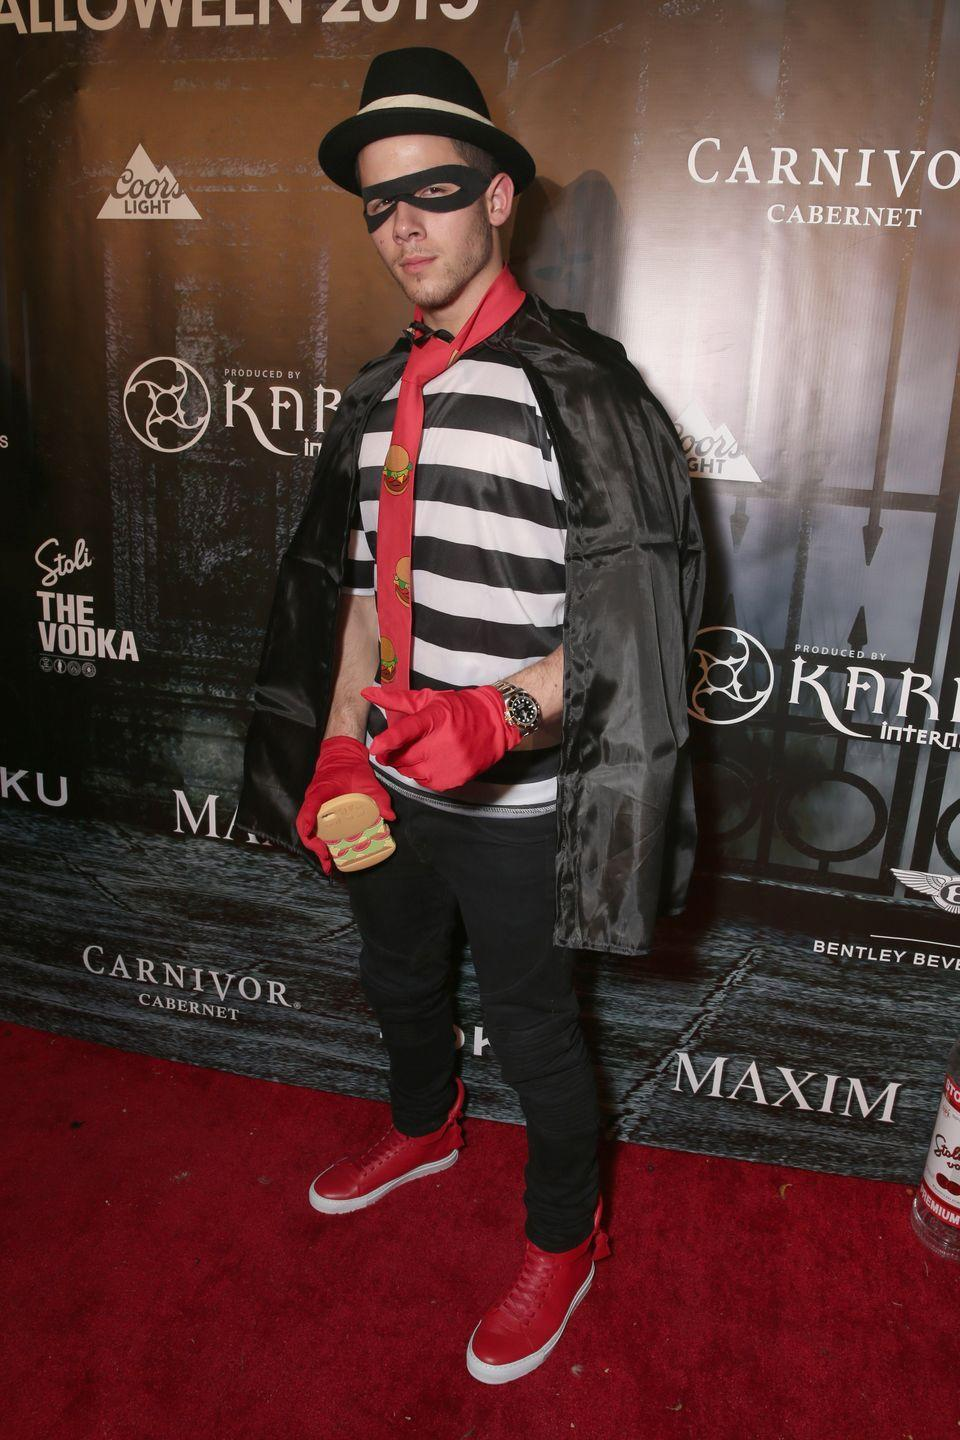 """<p>You don't have to be a hamburger lover to love this McDonald's Hamburglar costume. Just get your hands on a black-and-white striped shirt, a bandit mask, a fedora, and some red accessories. </p><p><a class=""""link rapid-noclick-resp"""" href=""""https://www.amazon.com/Zorro-Mask-Costume-Accessories-pack/dp/B00L2OZ71U?tag=syn-yahoo-20&ascsubtag=%5Bartid%7C10070.g.28171554%5Bsrc%7Cyahoo-us"""" rel=""""nofollow noopener"""" target=""""_blank"""" data-ylk=""""slk:SHOP BANDIT MASK"""">SHOP BANDIT MASK</a></p>"""